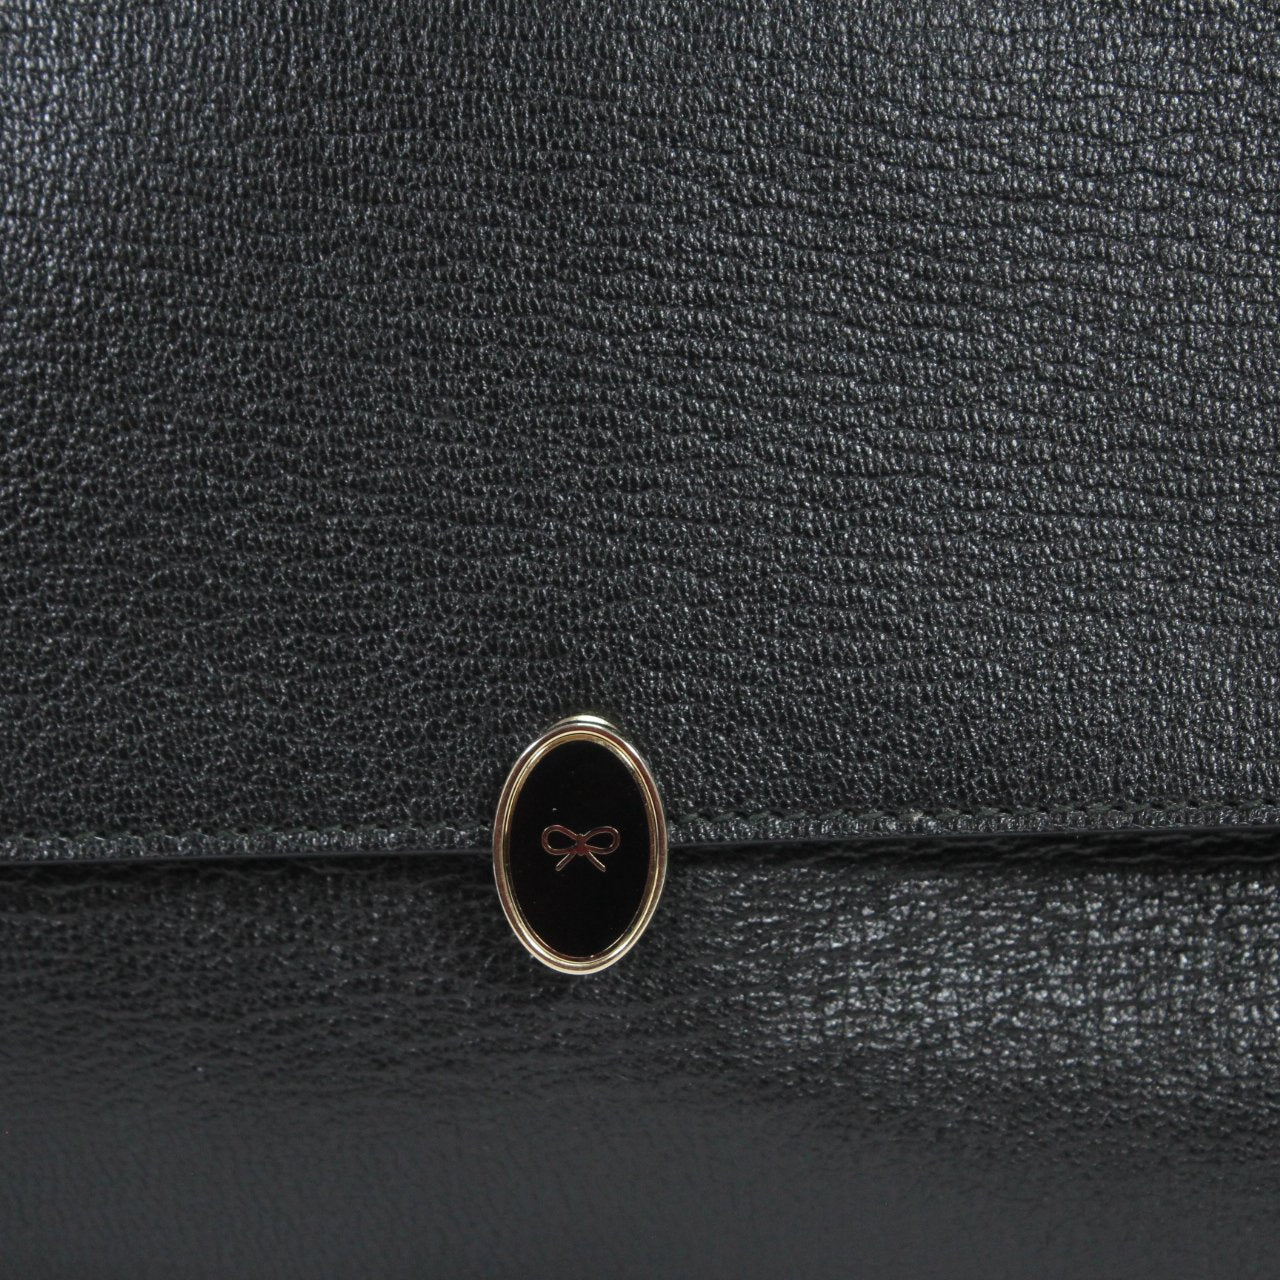 Anya Hindmarch Deconstructed Bathurst Satchel in Capra Leather